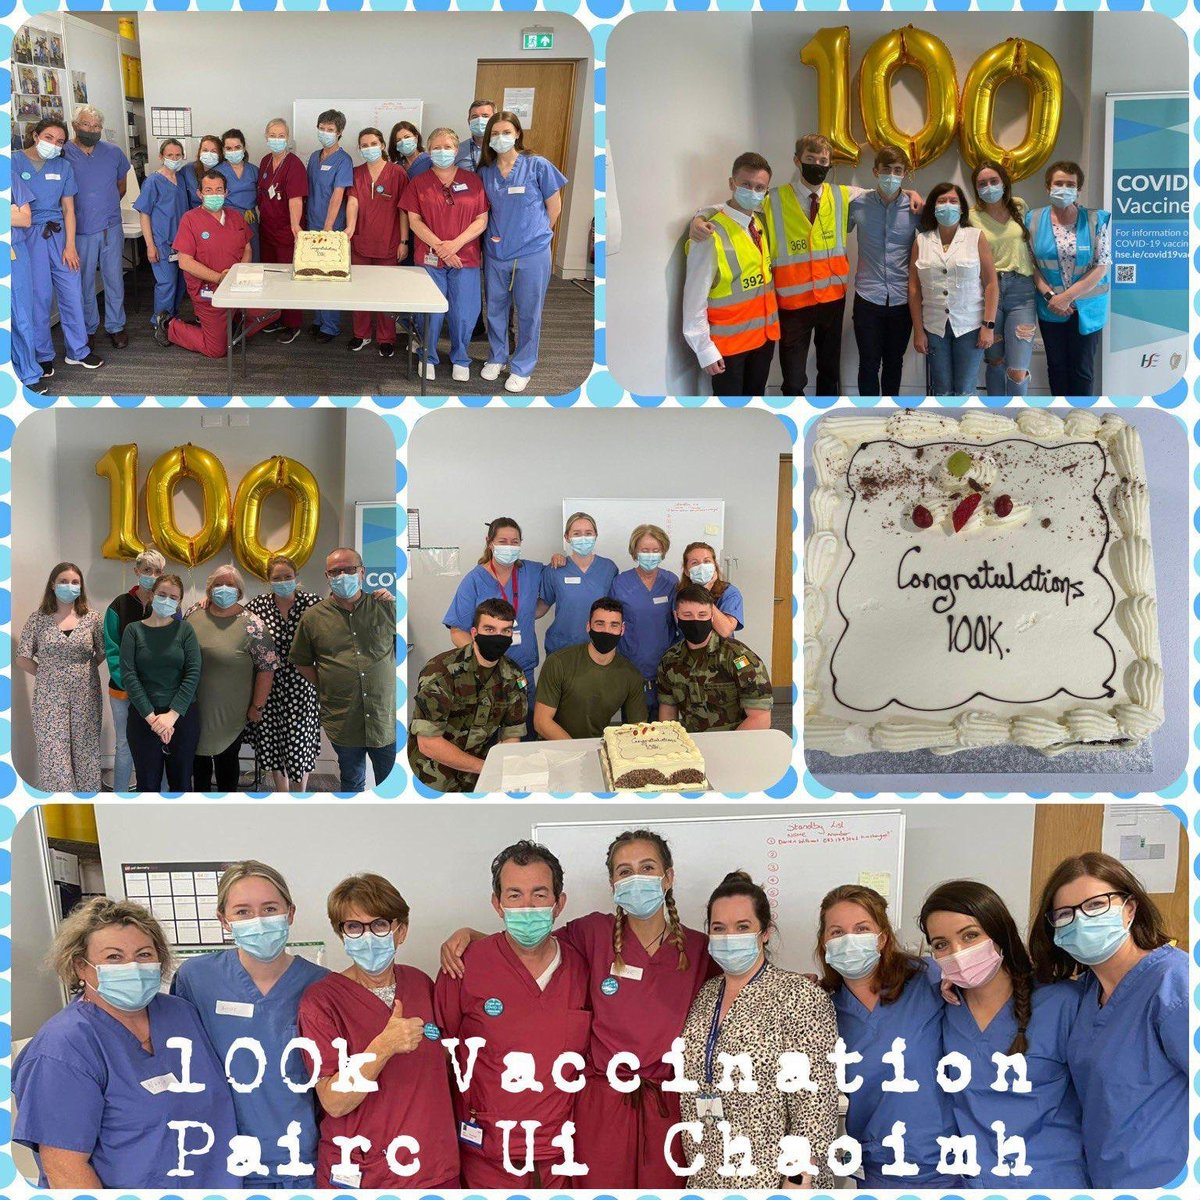 Congratulations to all the staff and volunteers at Páirc Uí Chaoimh for reaching the milestone of 100,000 #Covid19 vaccinations this week.   A great achievement in our national rollout. https://t.co/fMFP70kolO